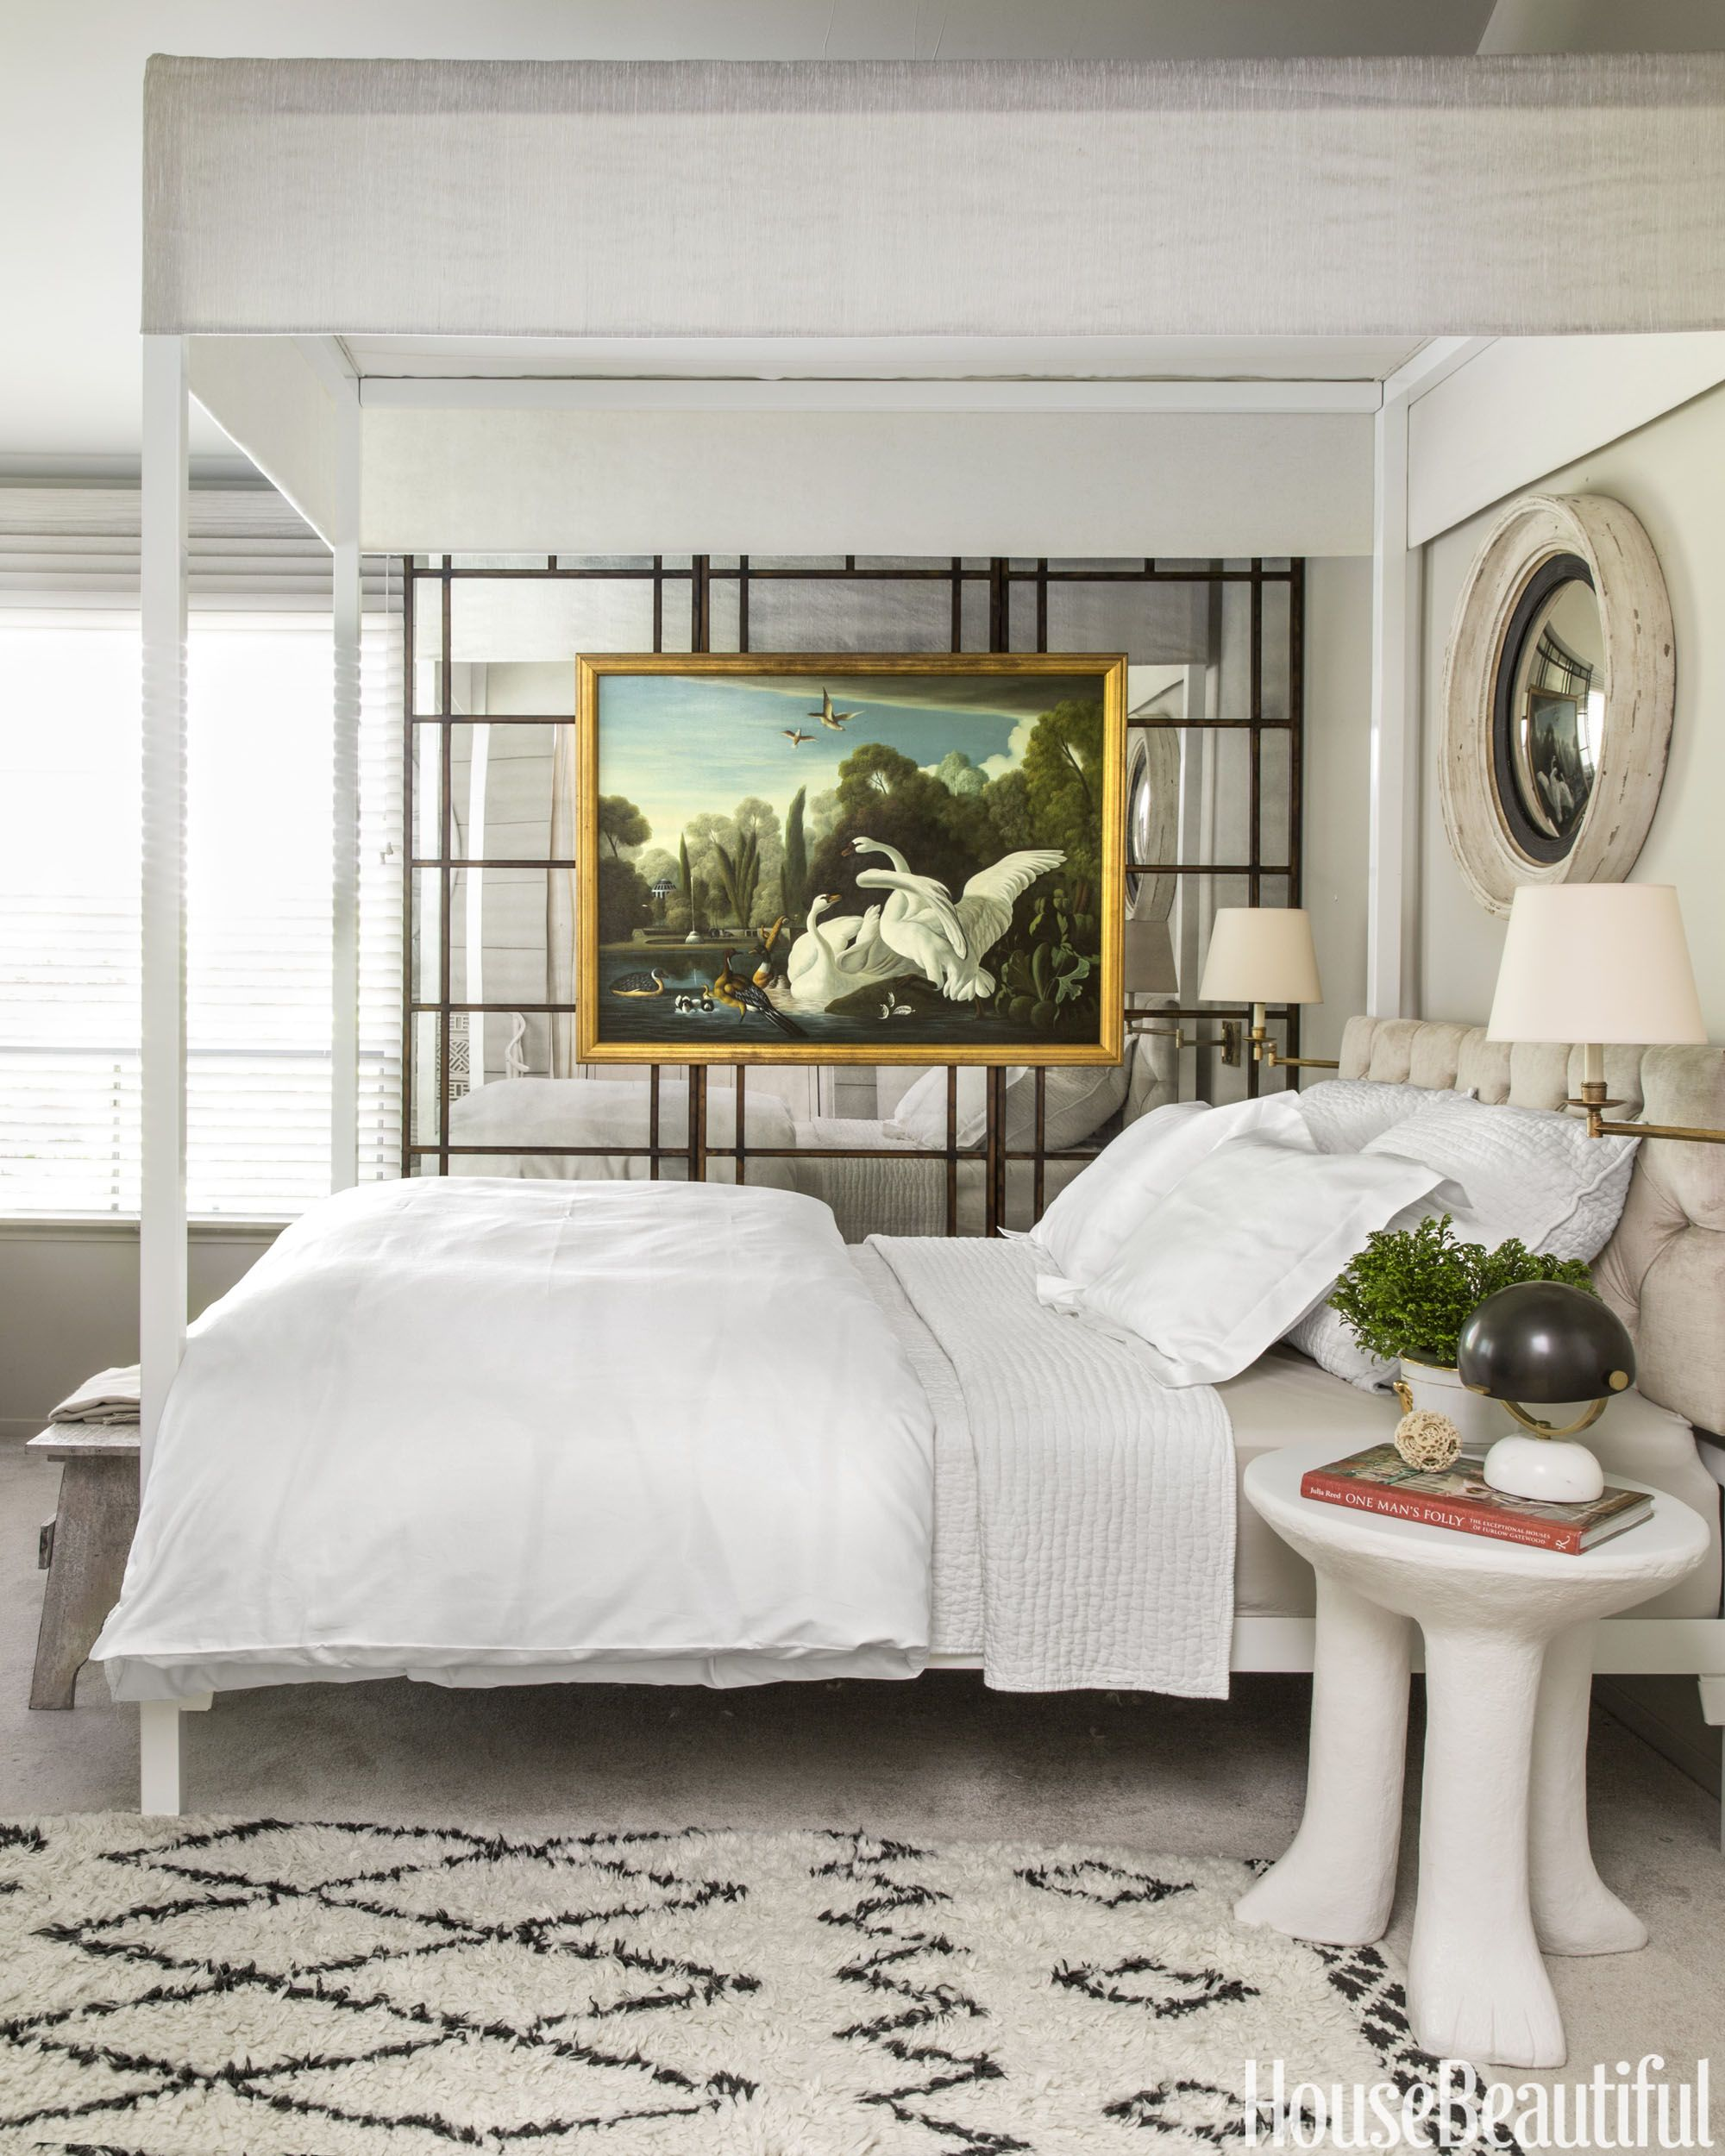 A Canopy Bed By Room & Board, With Pottery Barn